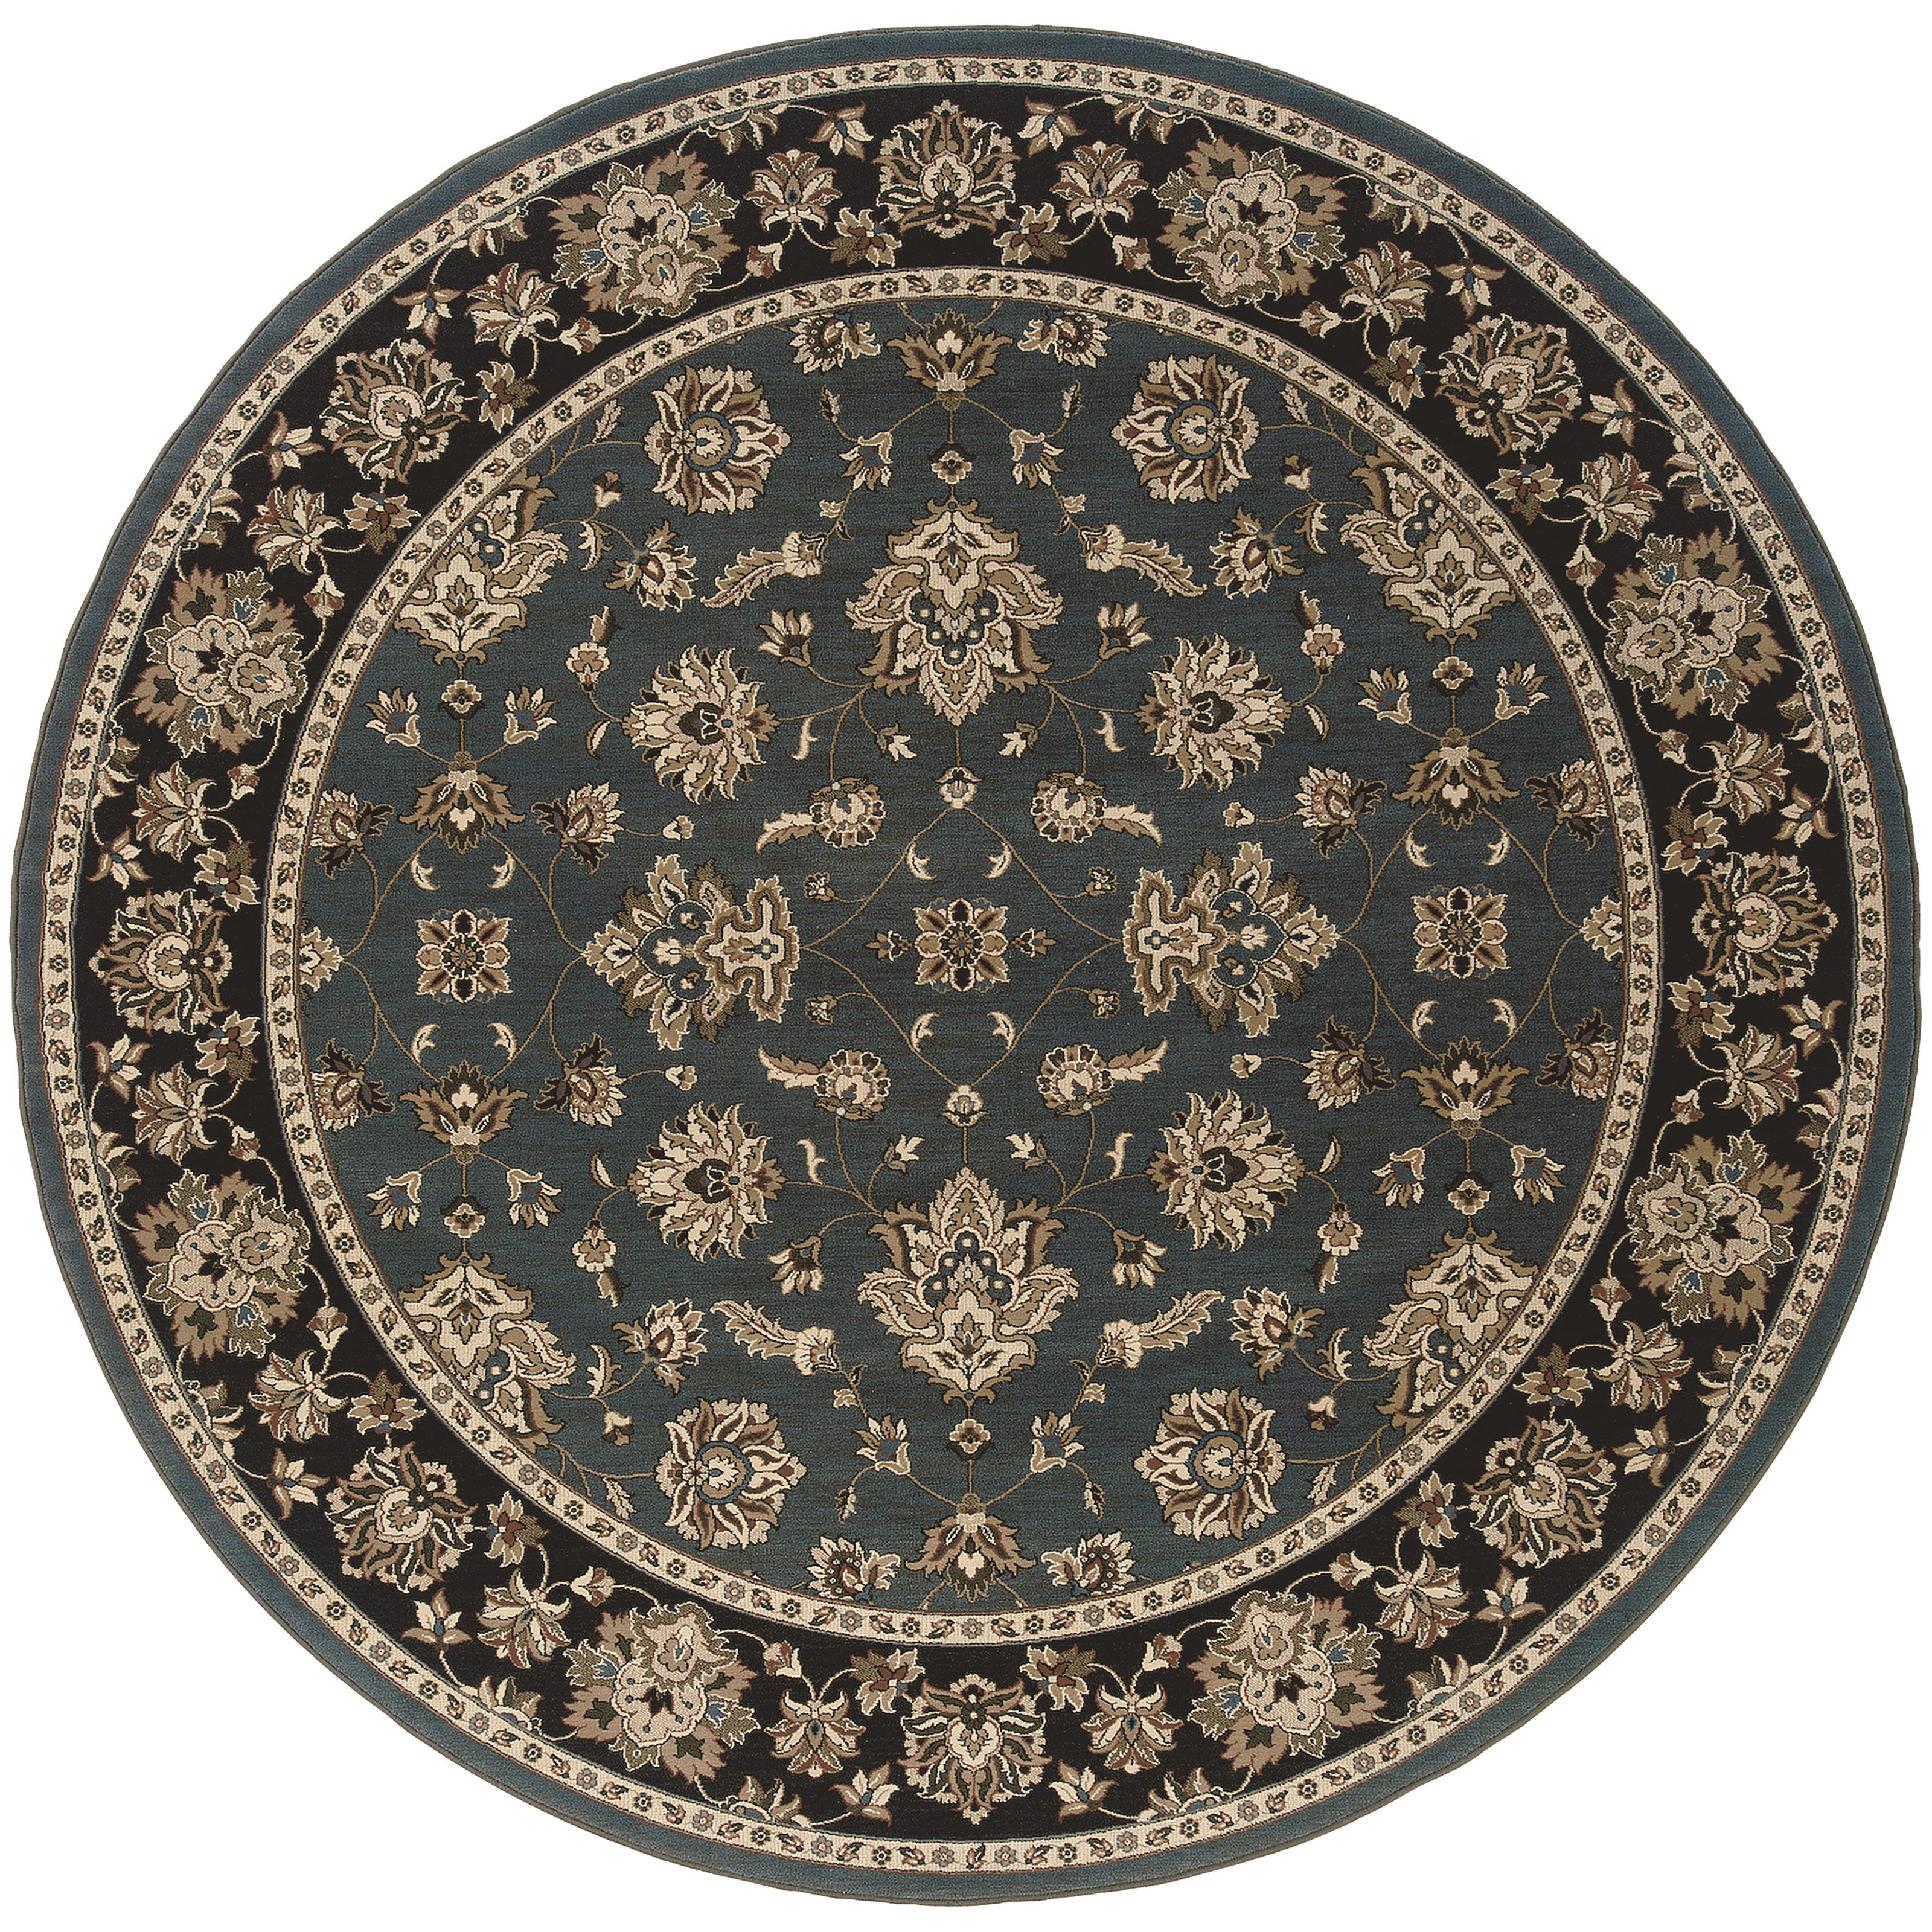 Ariana 6' Rug by Oriental Weavers at Steger's Furniture